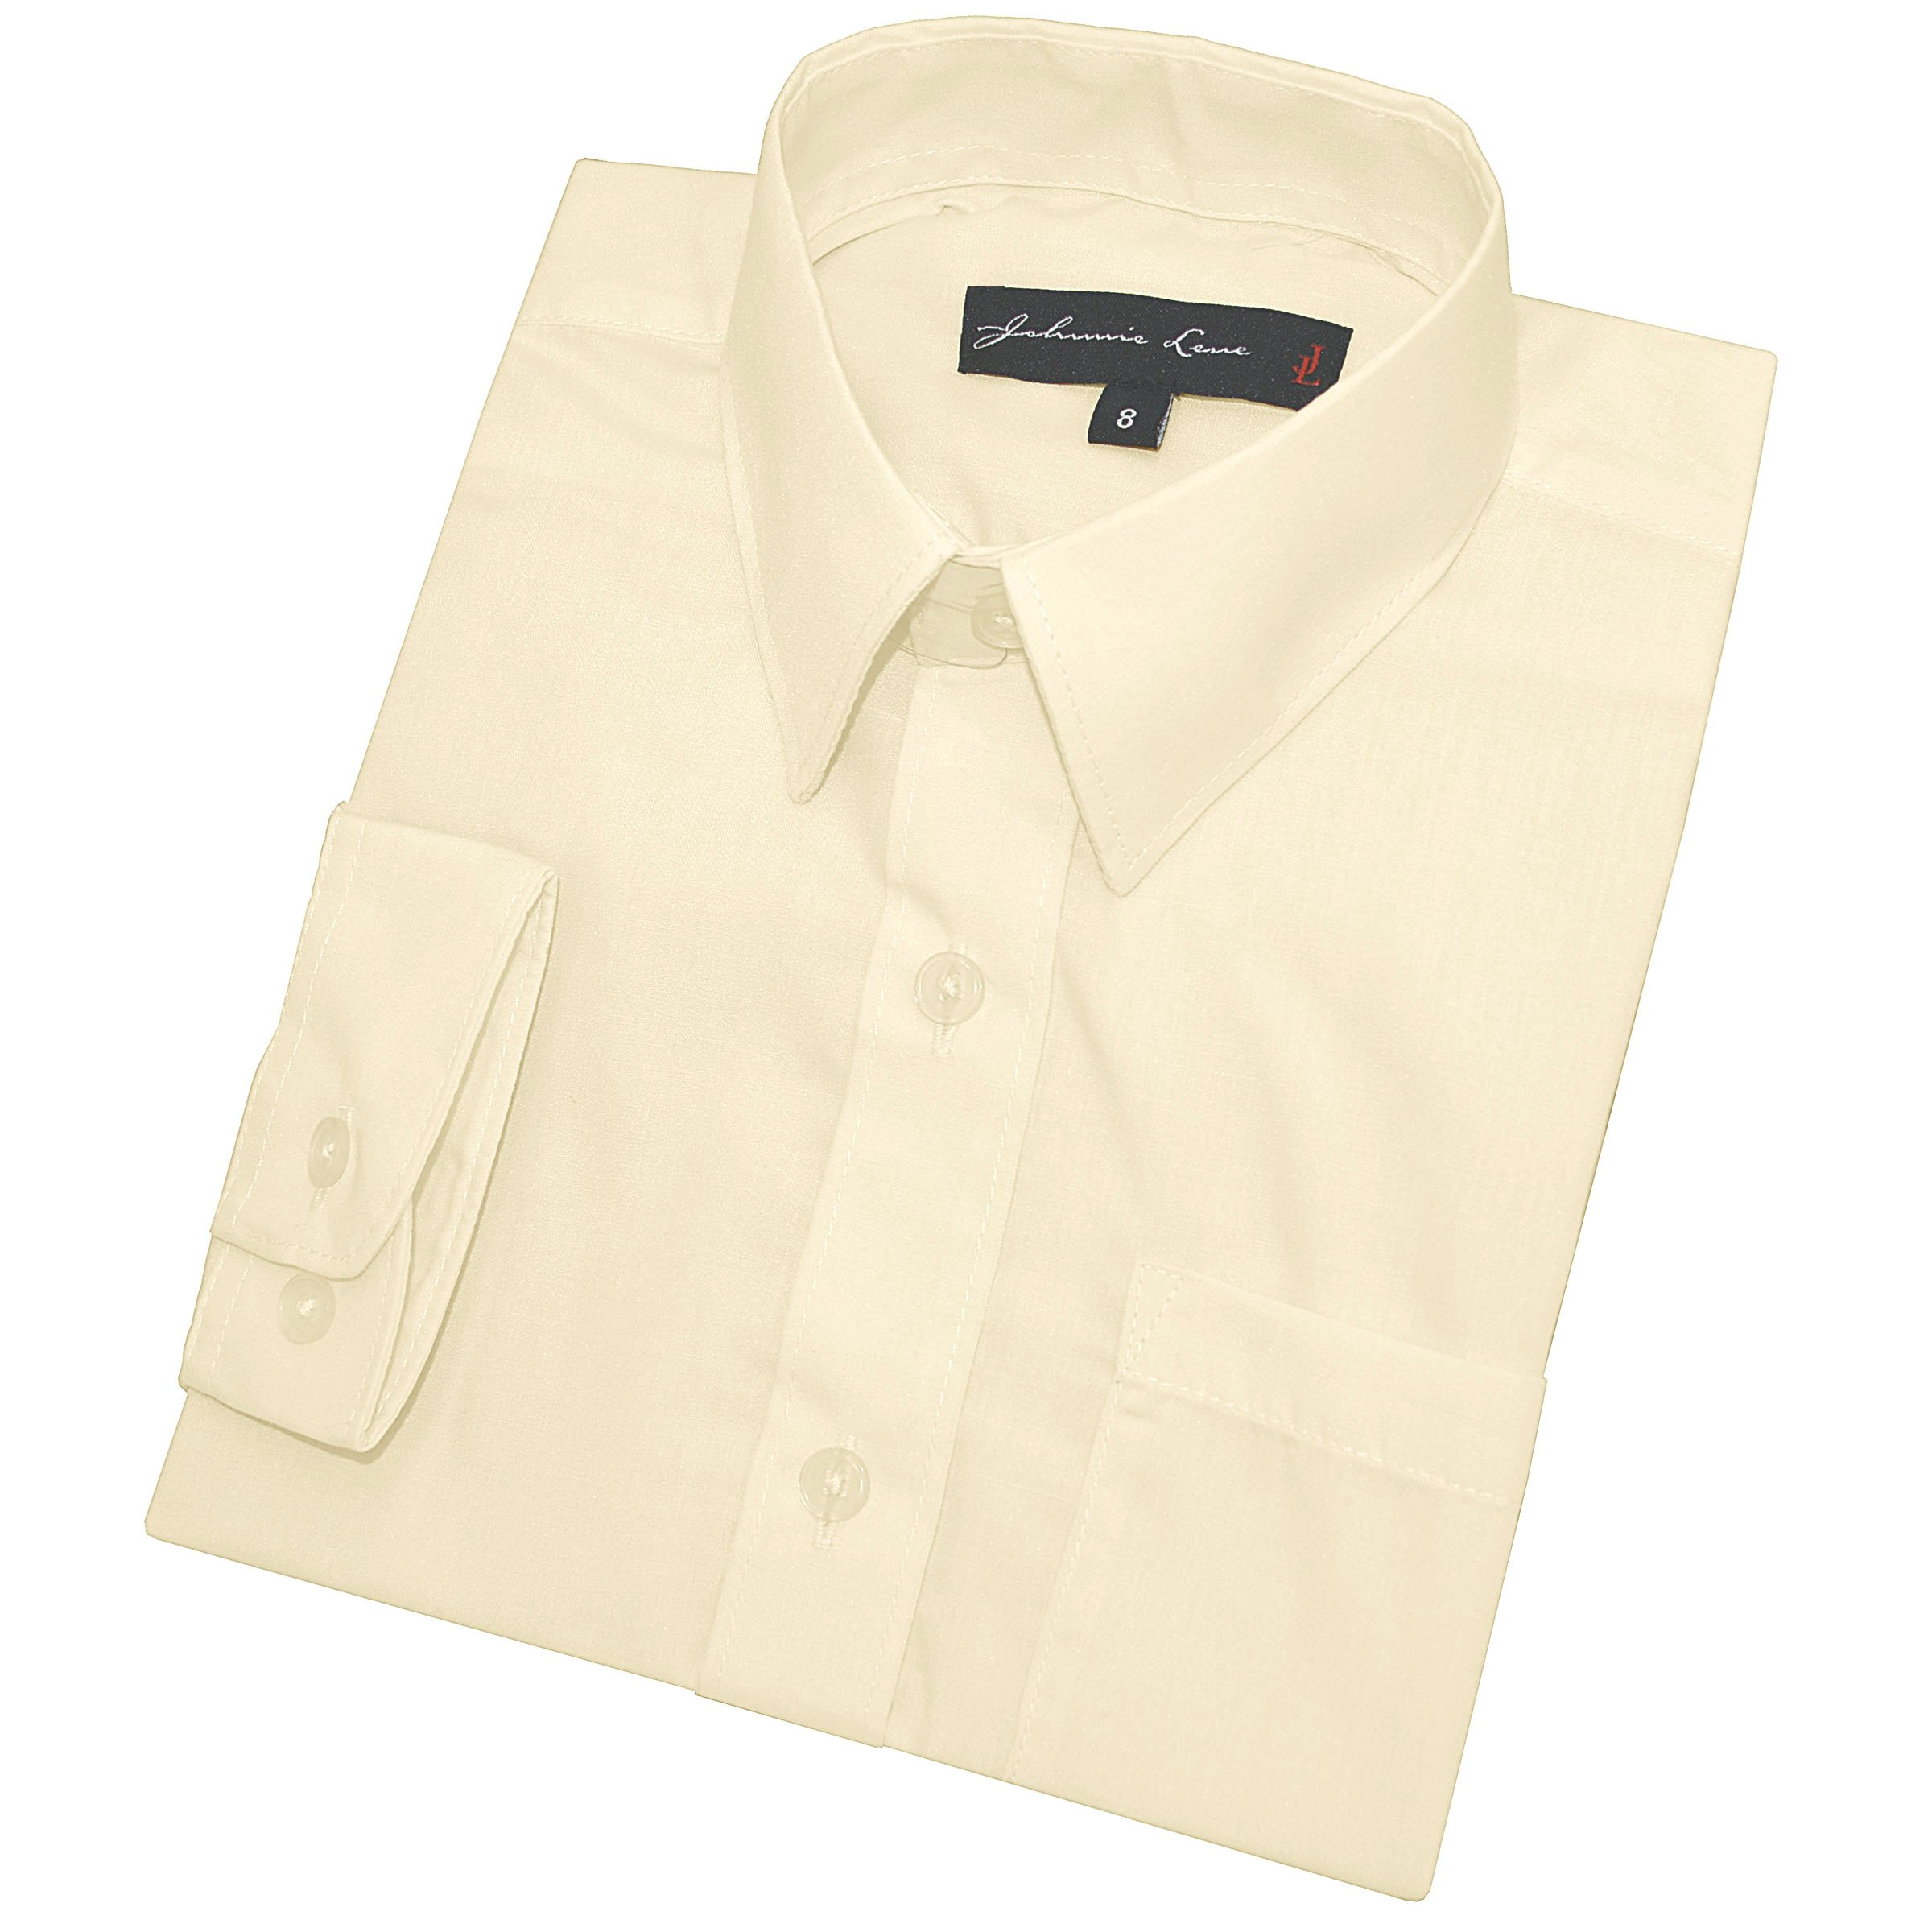 Big Boy's Long Sleeves Solid Dress Shirt #JL32 (20, Ivory)